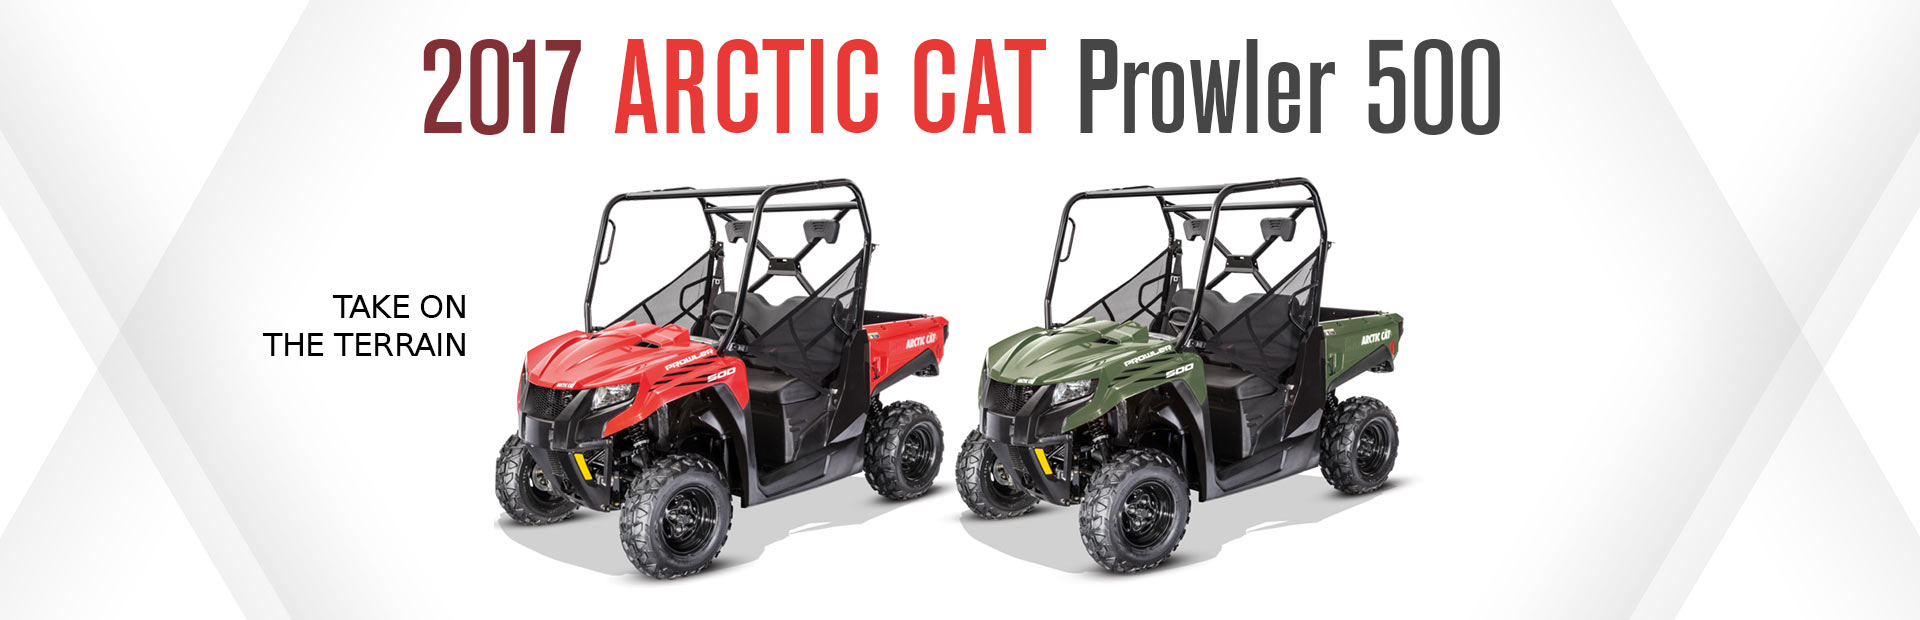 2017 Arctic Cat Prowler 500: Click here to view our selection!